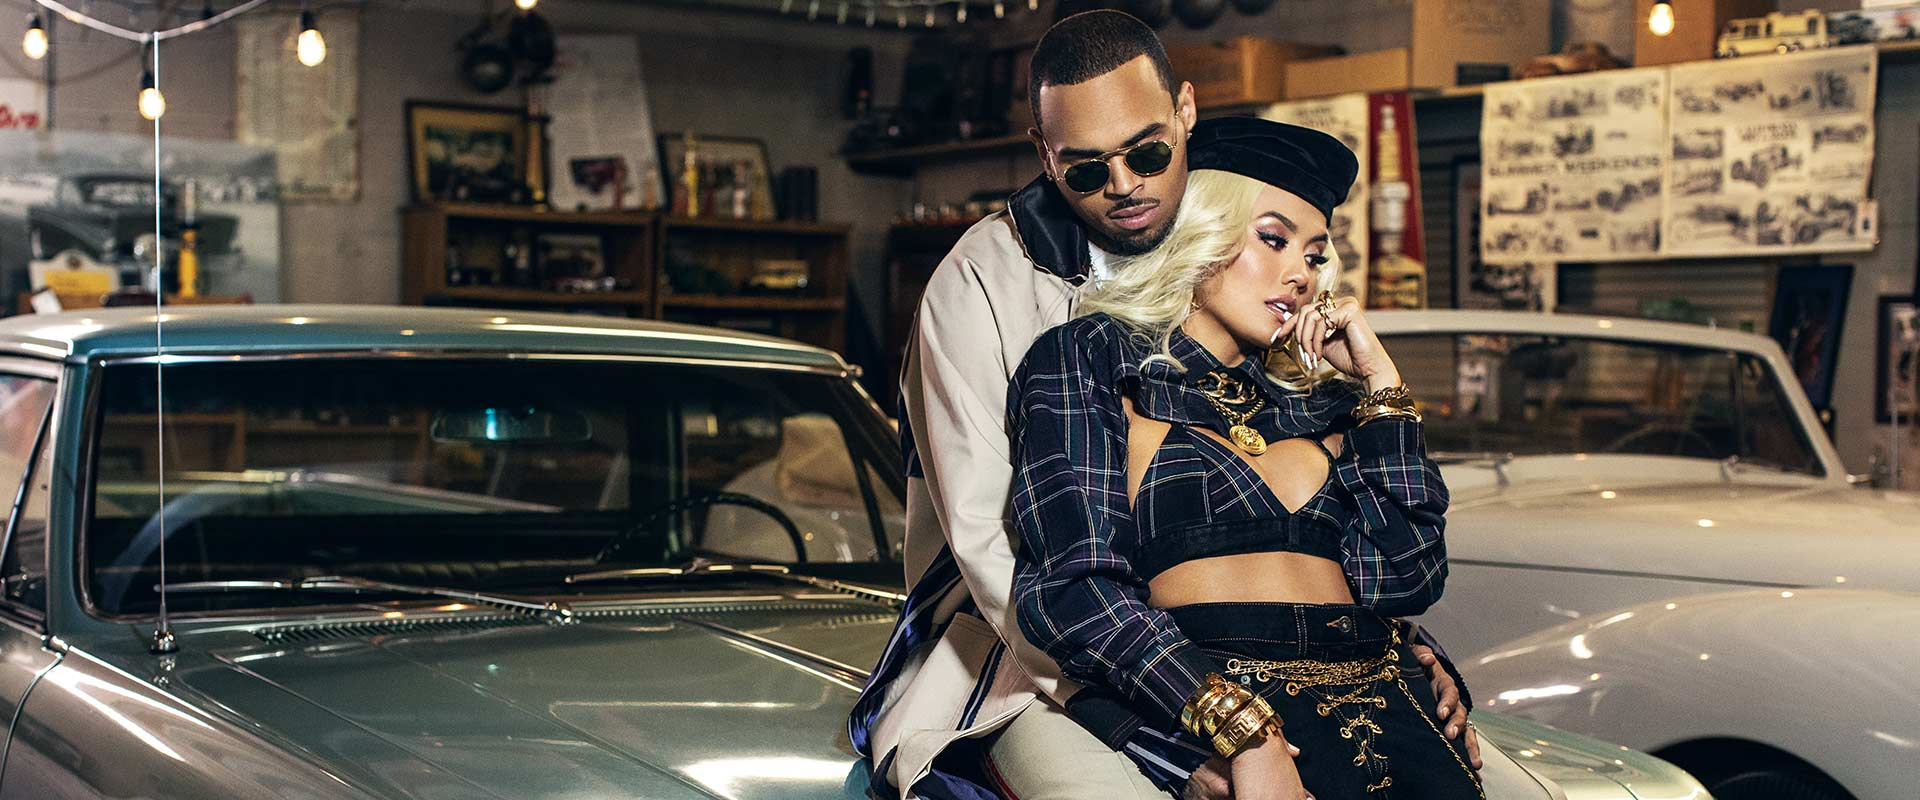 New Single Overdose On sale the new hit single Overdose from Agnez Mo and Chris Brown